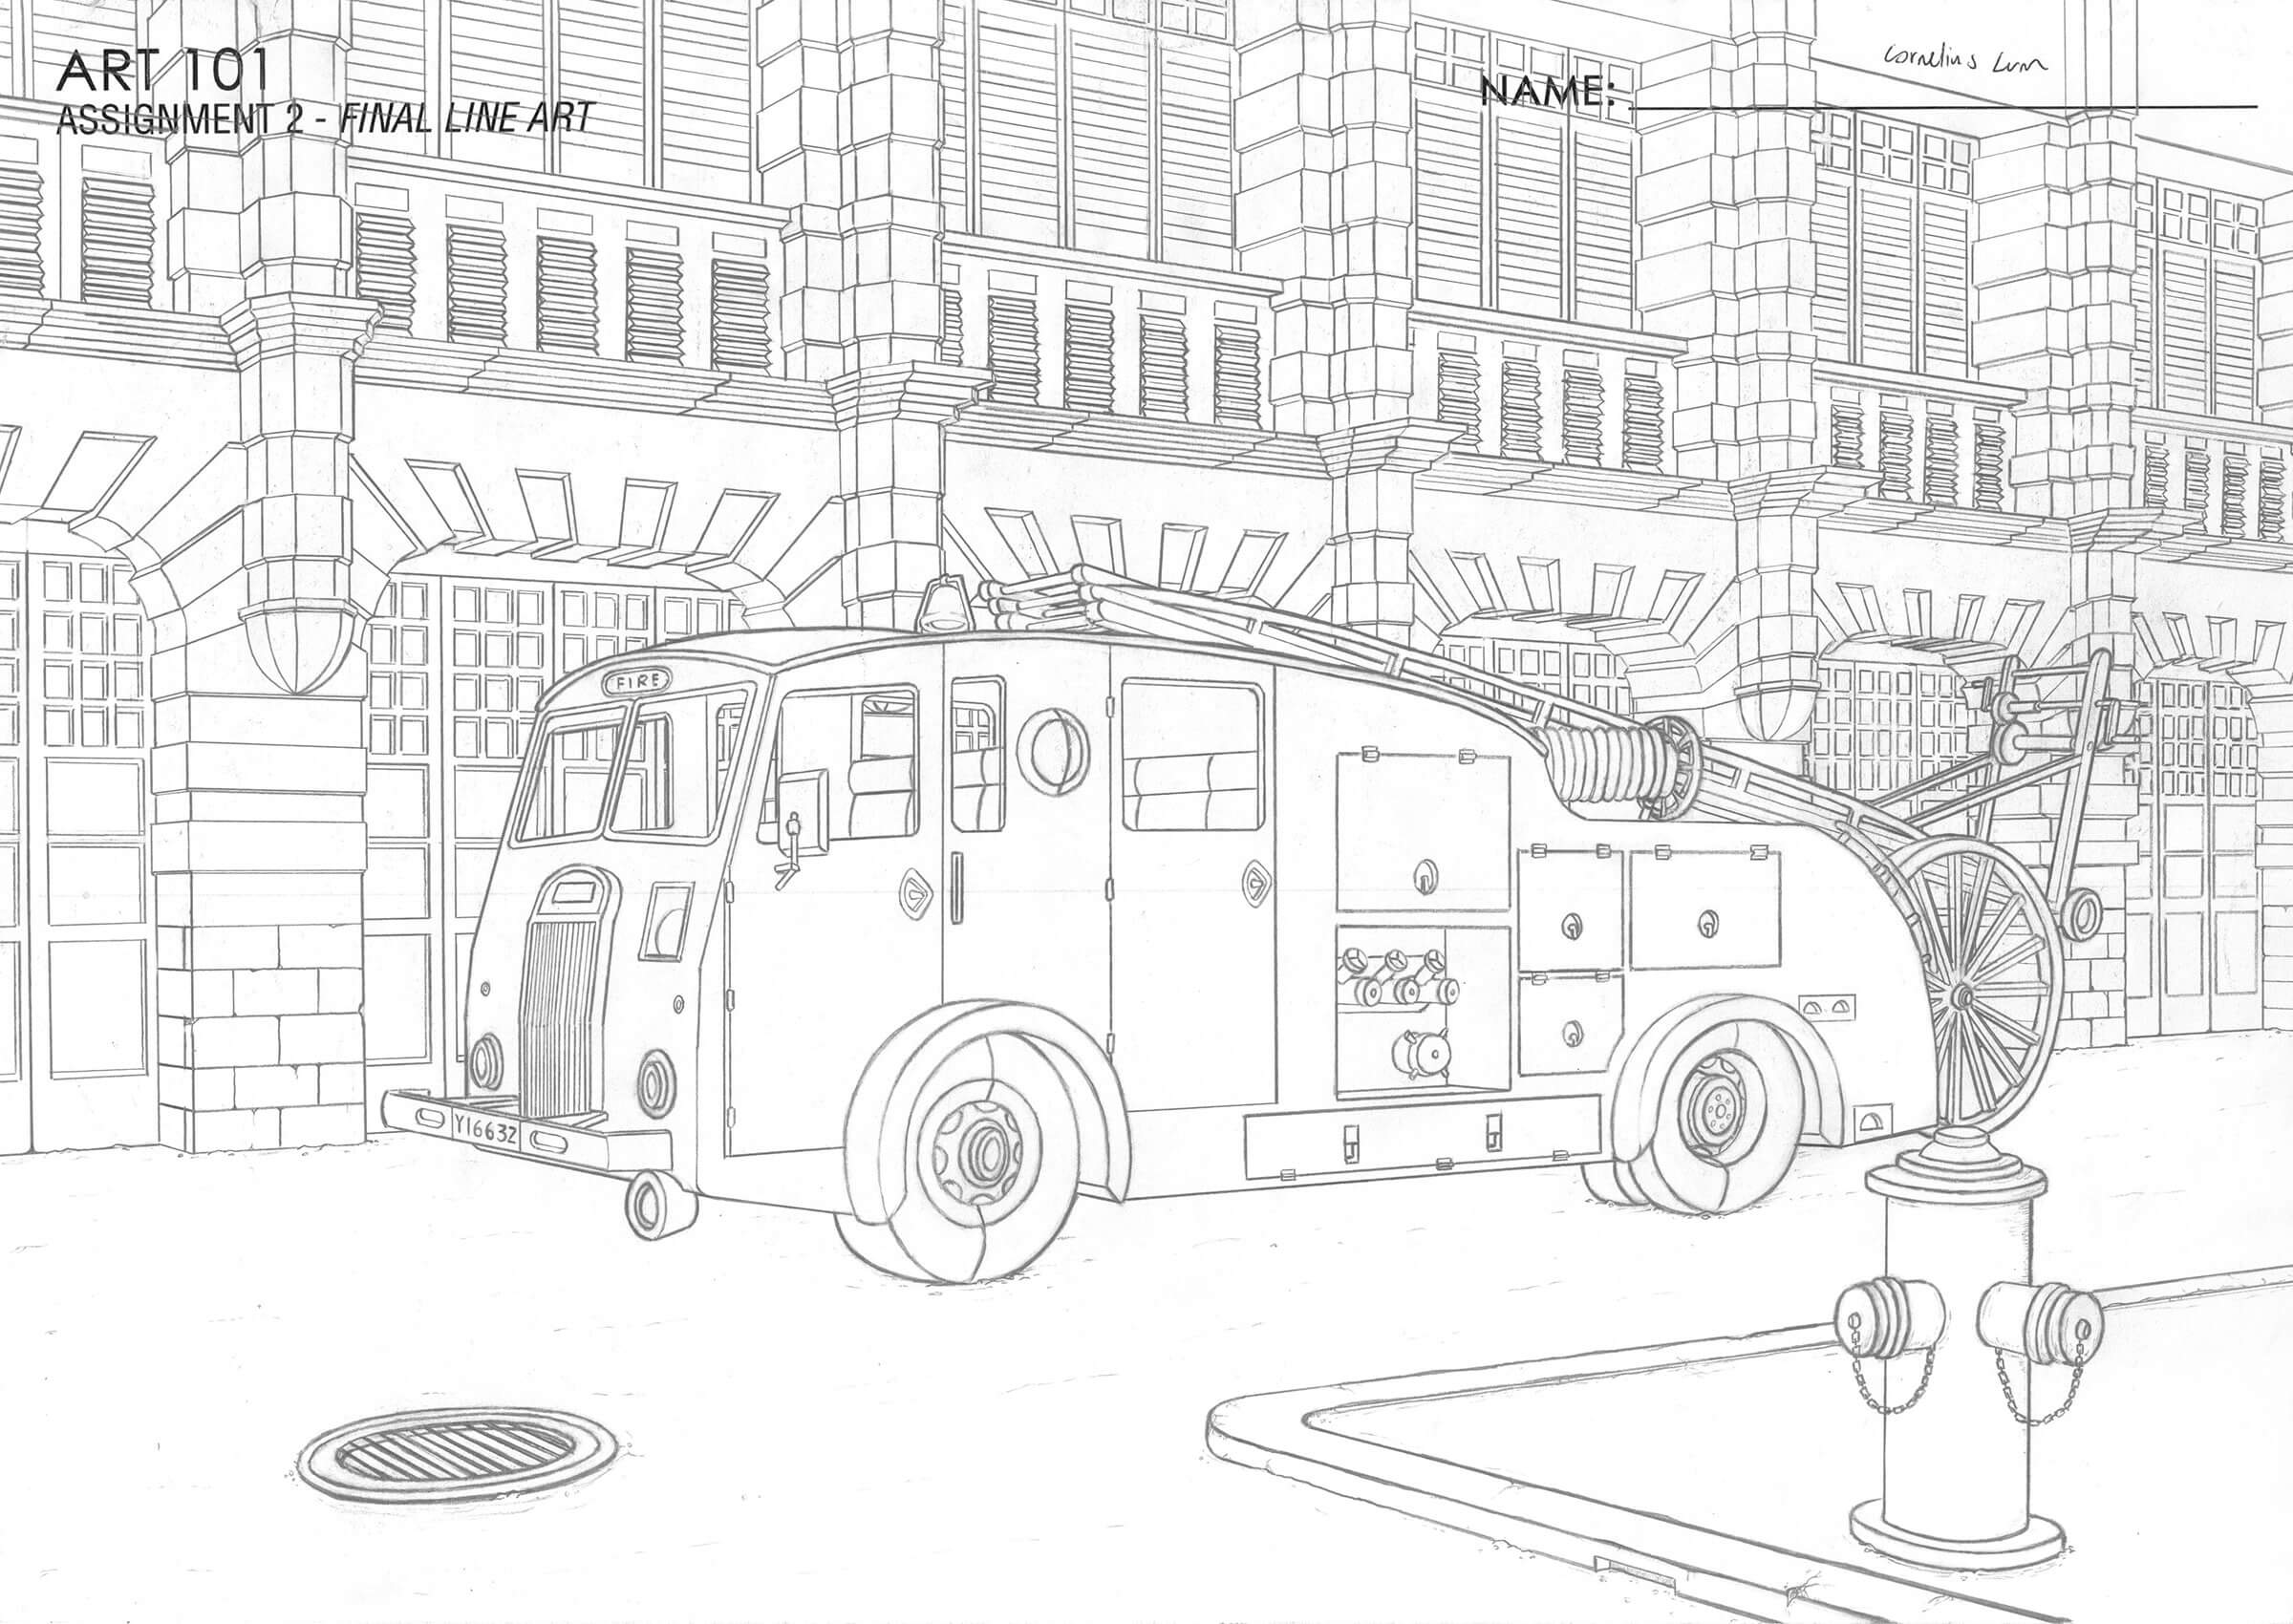 Black-and-white sketch of a fire engine next to a building.